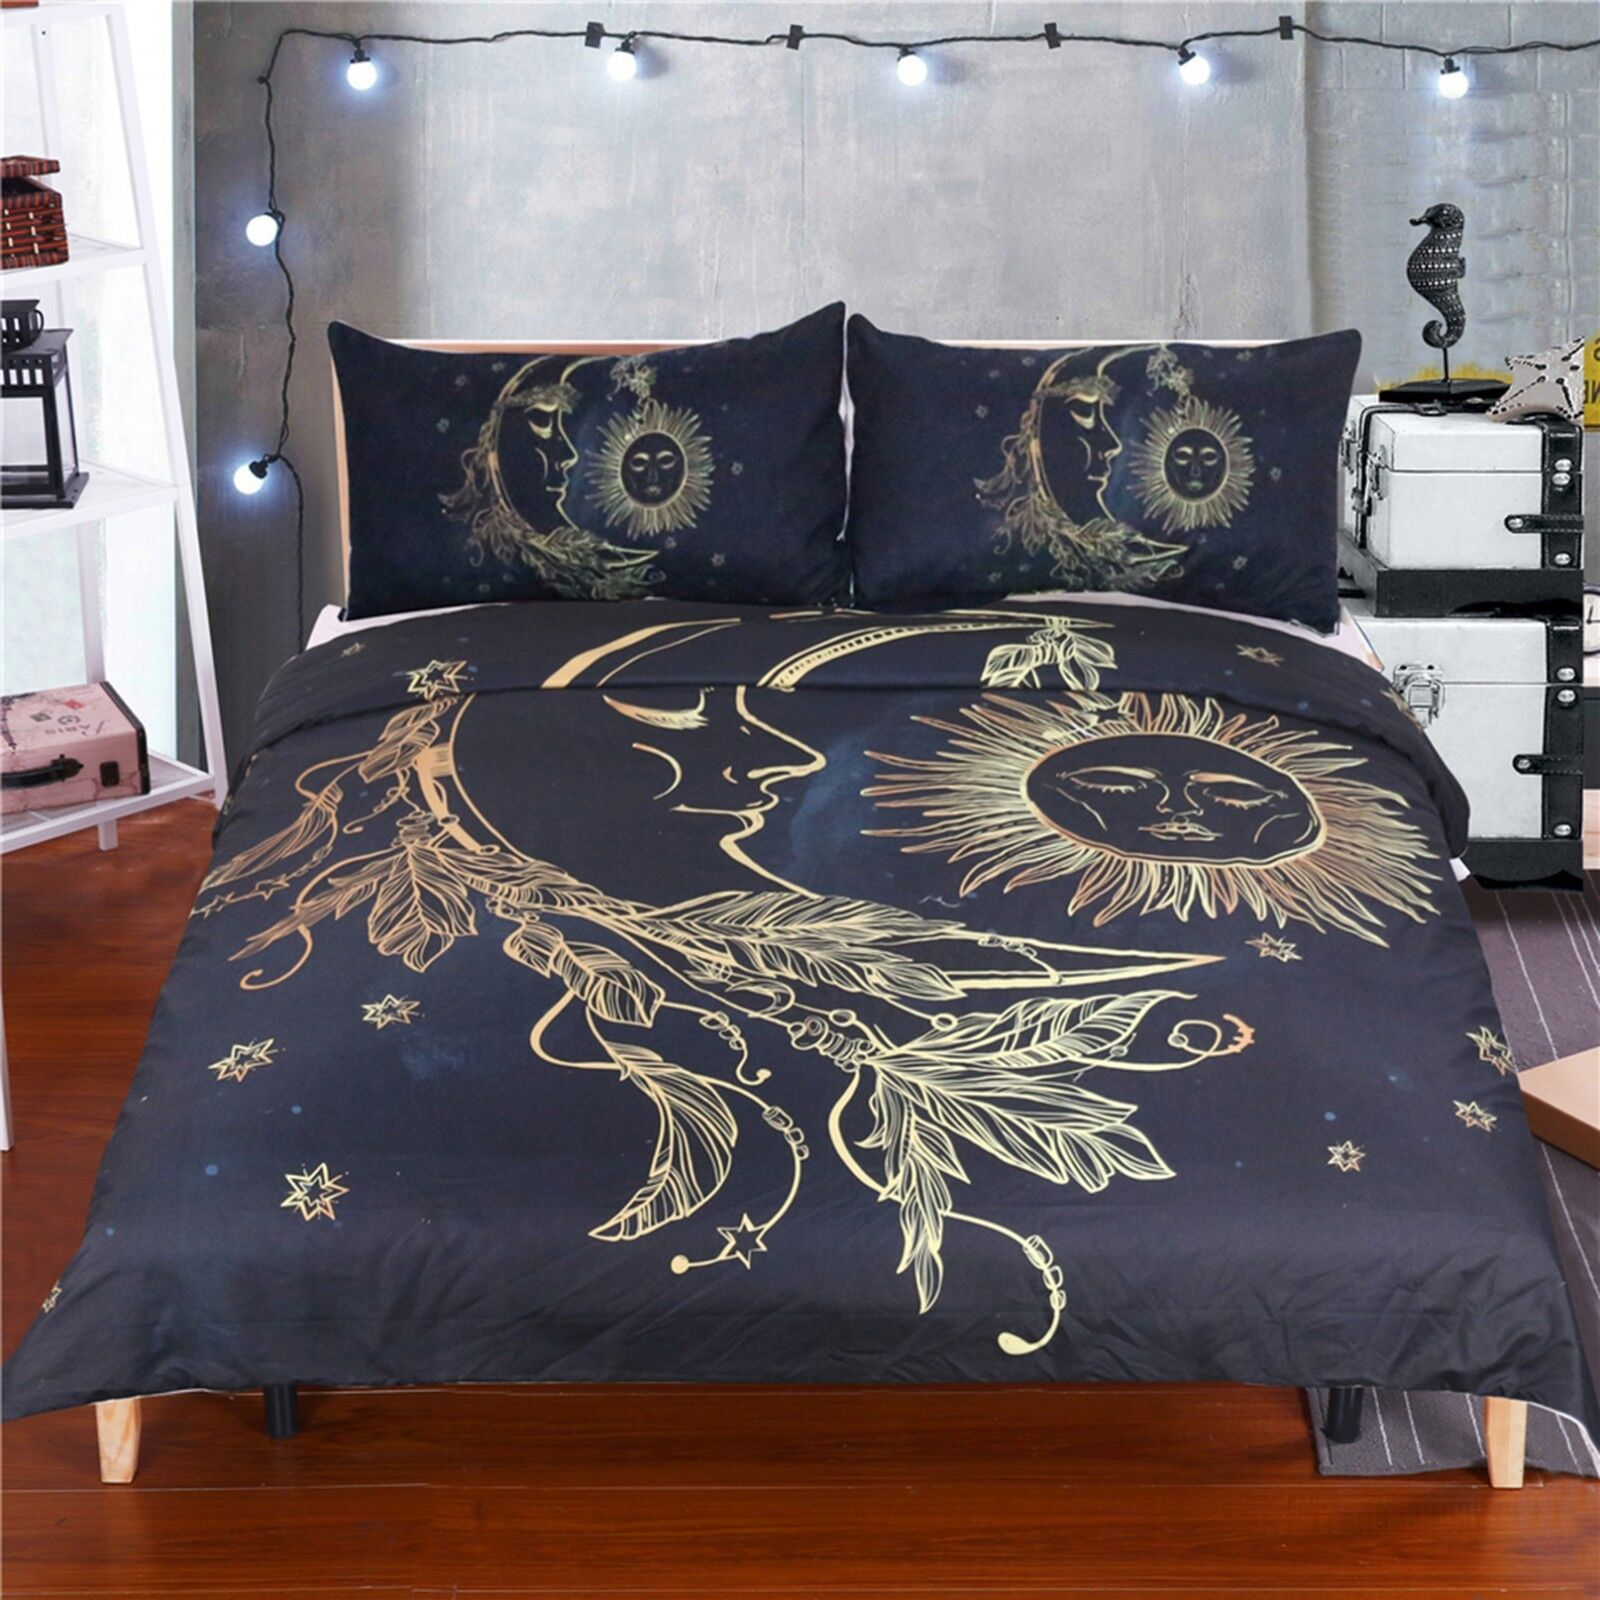 3D Moon Sun Pattern 424 Bed Pillowcases Quilt Duvet Cover Set Single Queen CA